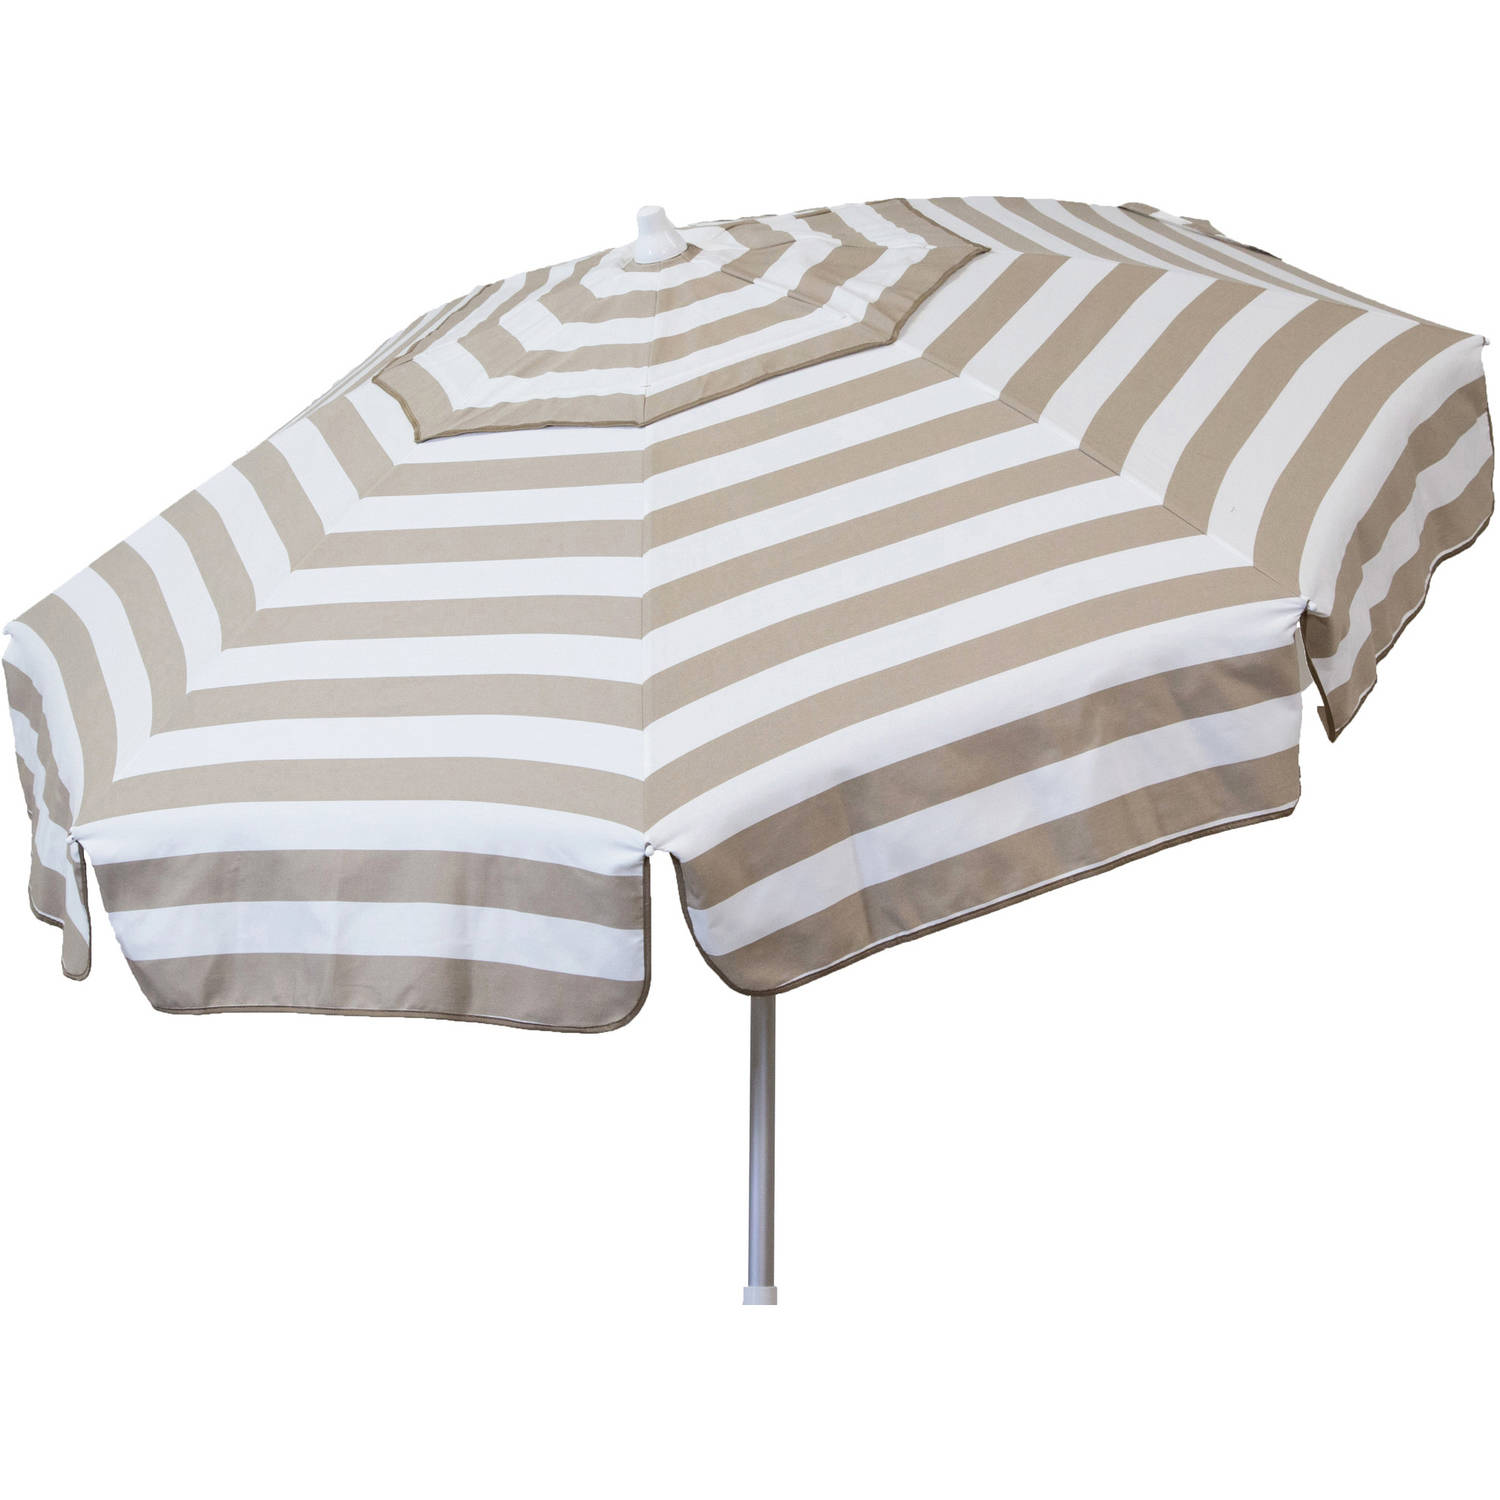 DestinationGear Italian 6' Umbrella Acrylic Stripes Khaki and White Beach Pole